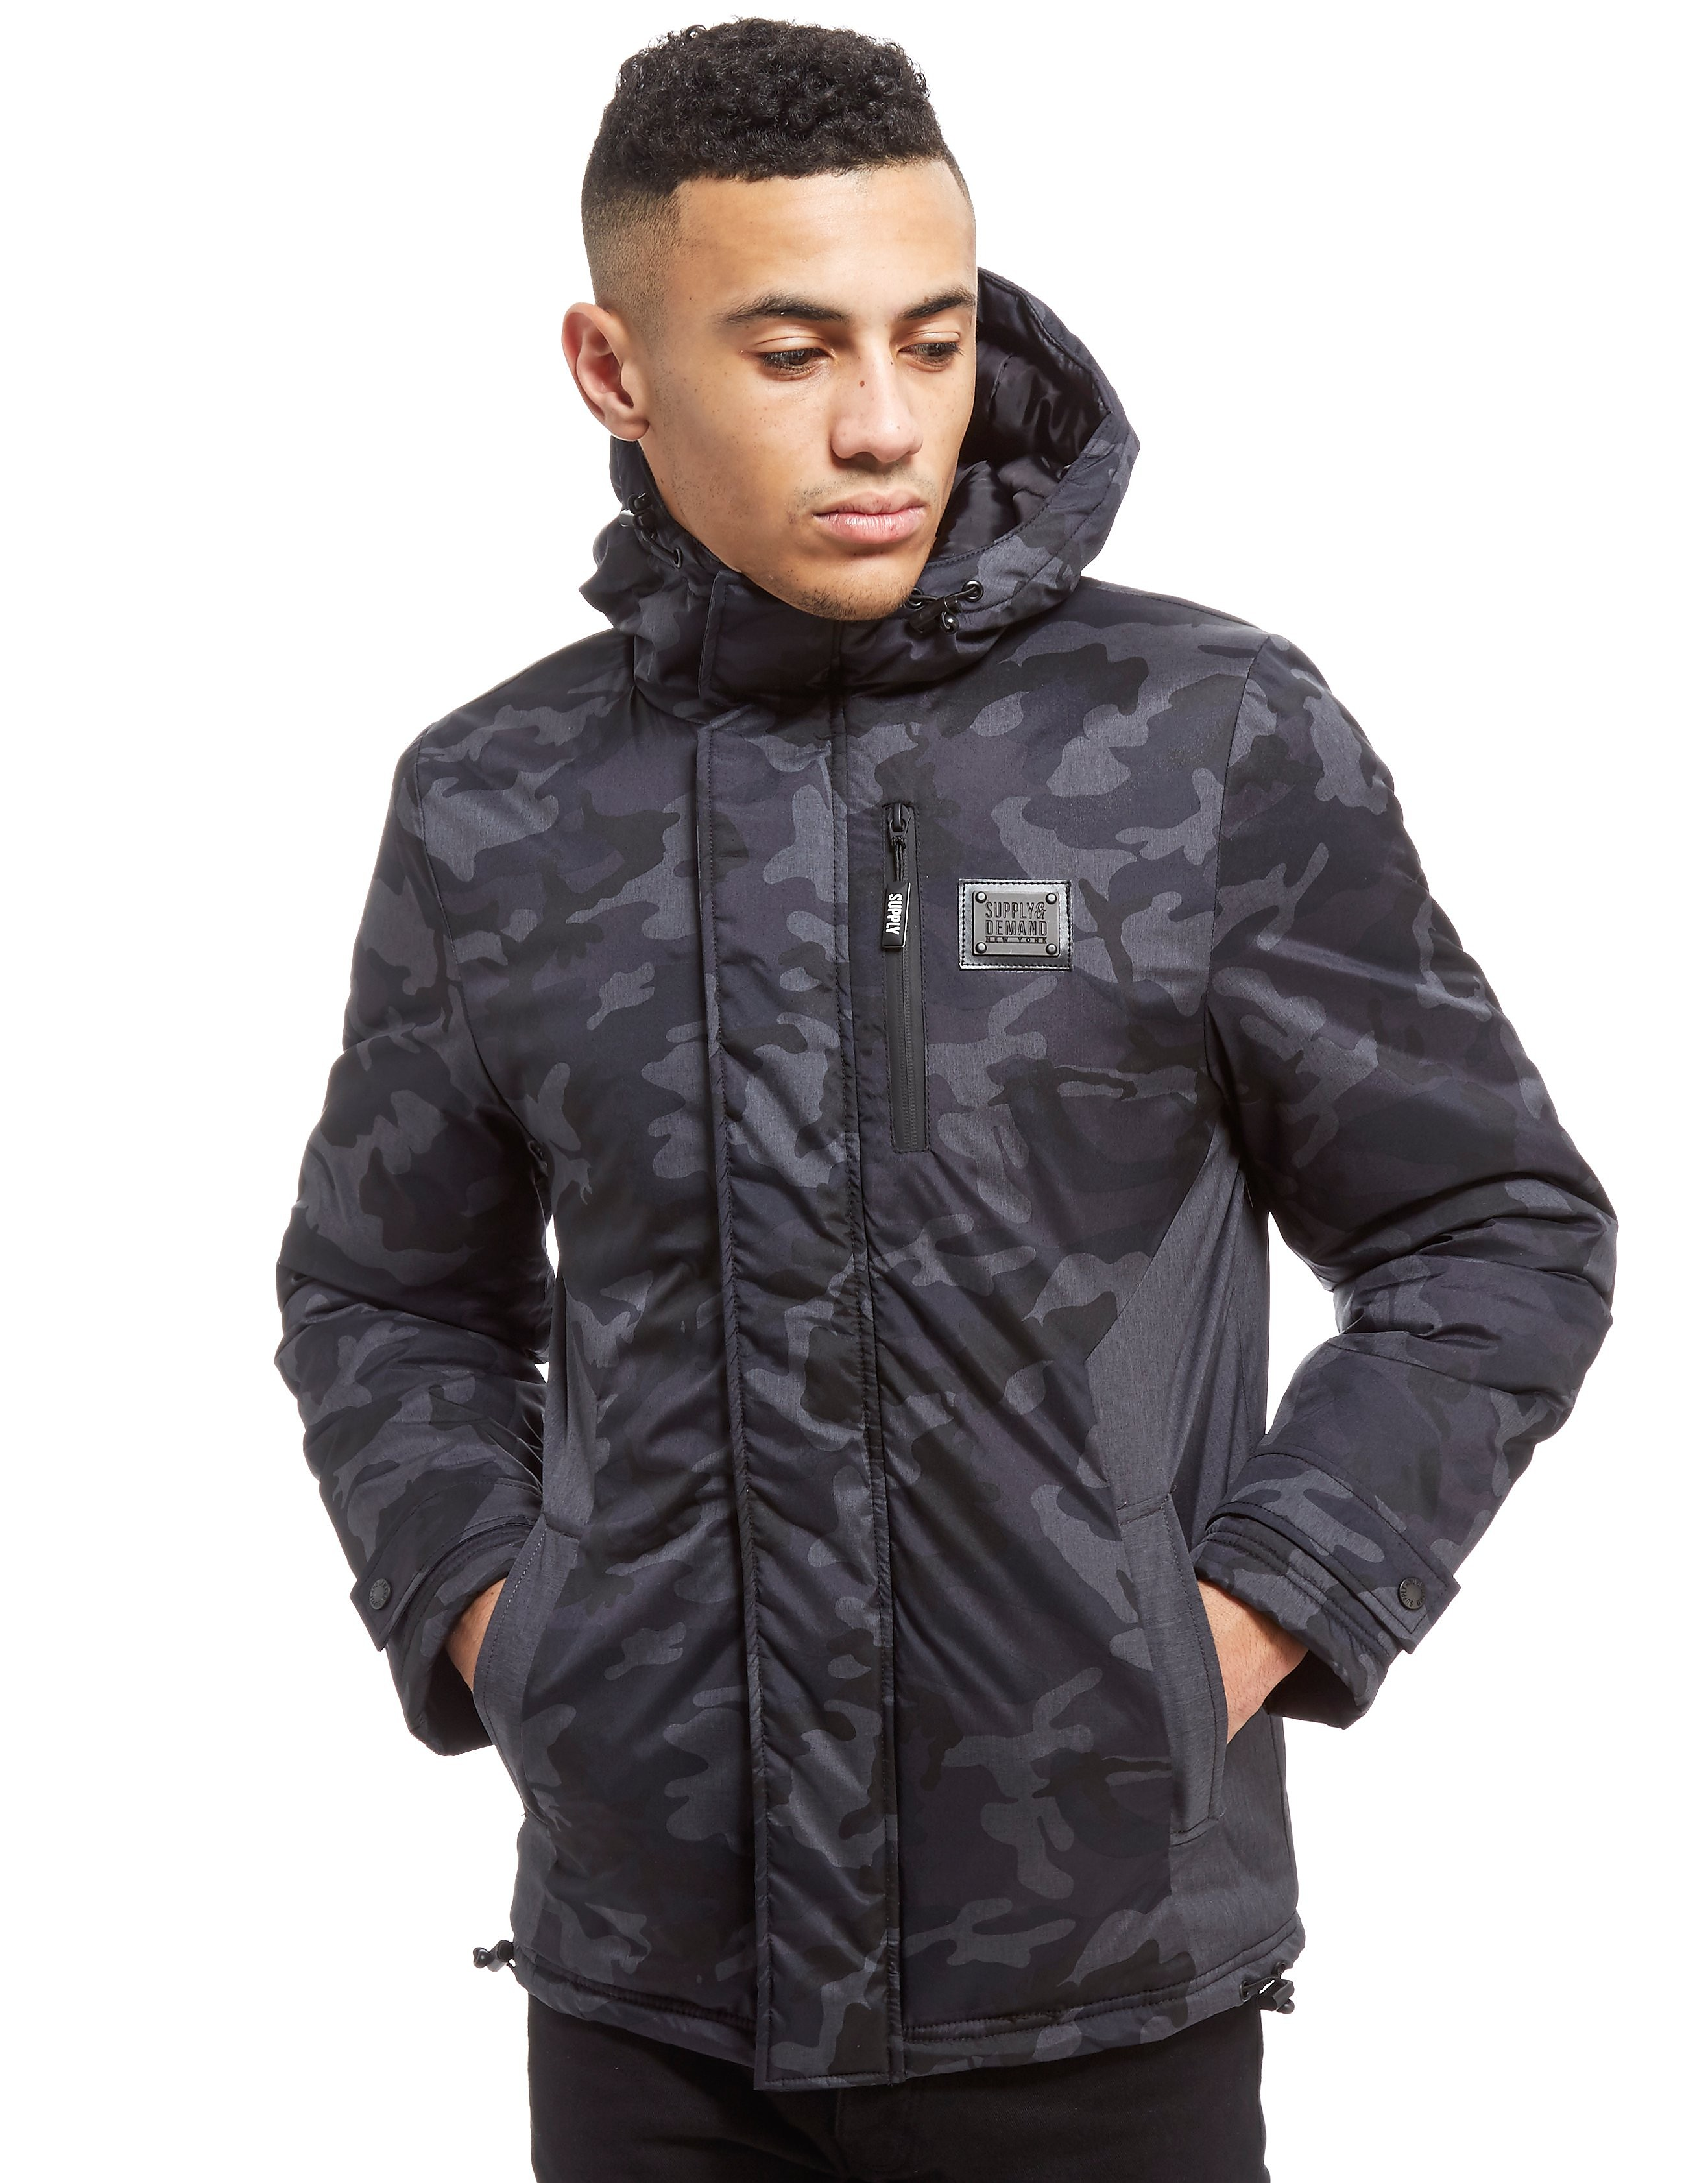 Supply & Demand Elmau Jacket - Zwart - Heren